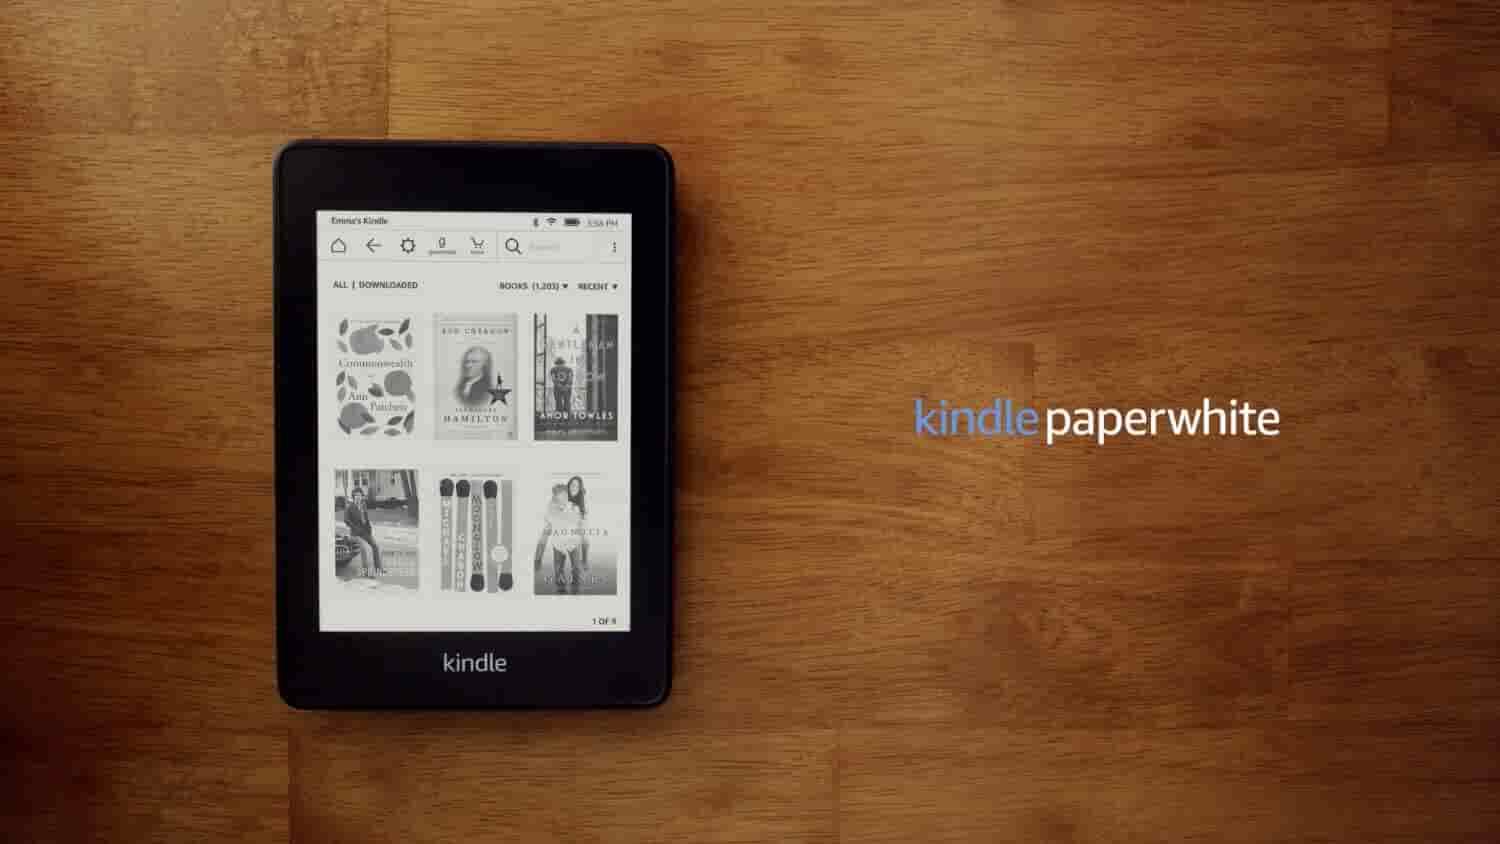 Meet the all-new Kindle Paperwhite